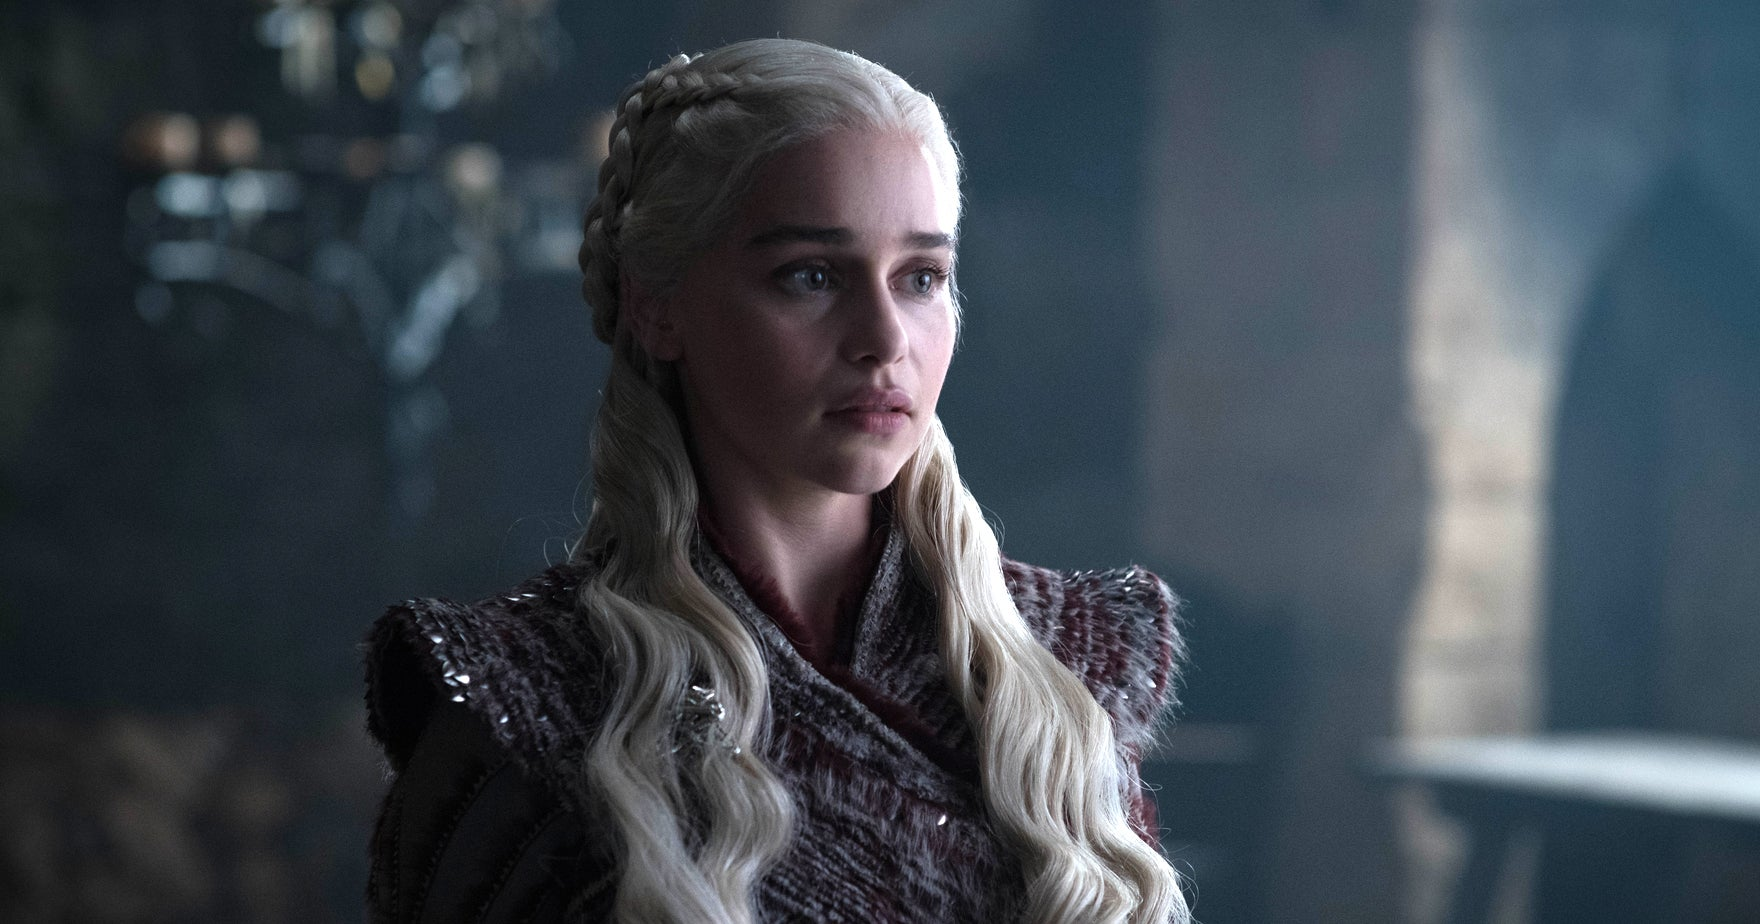 The New GoT Series Is Already Failing Its Women Characters